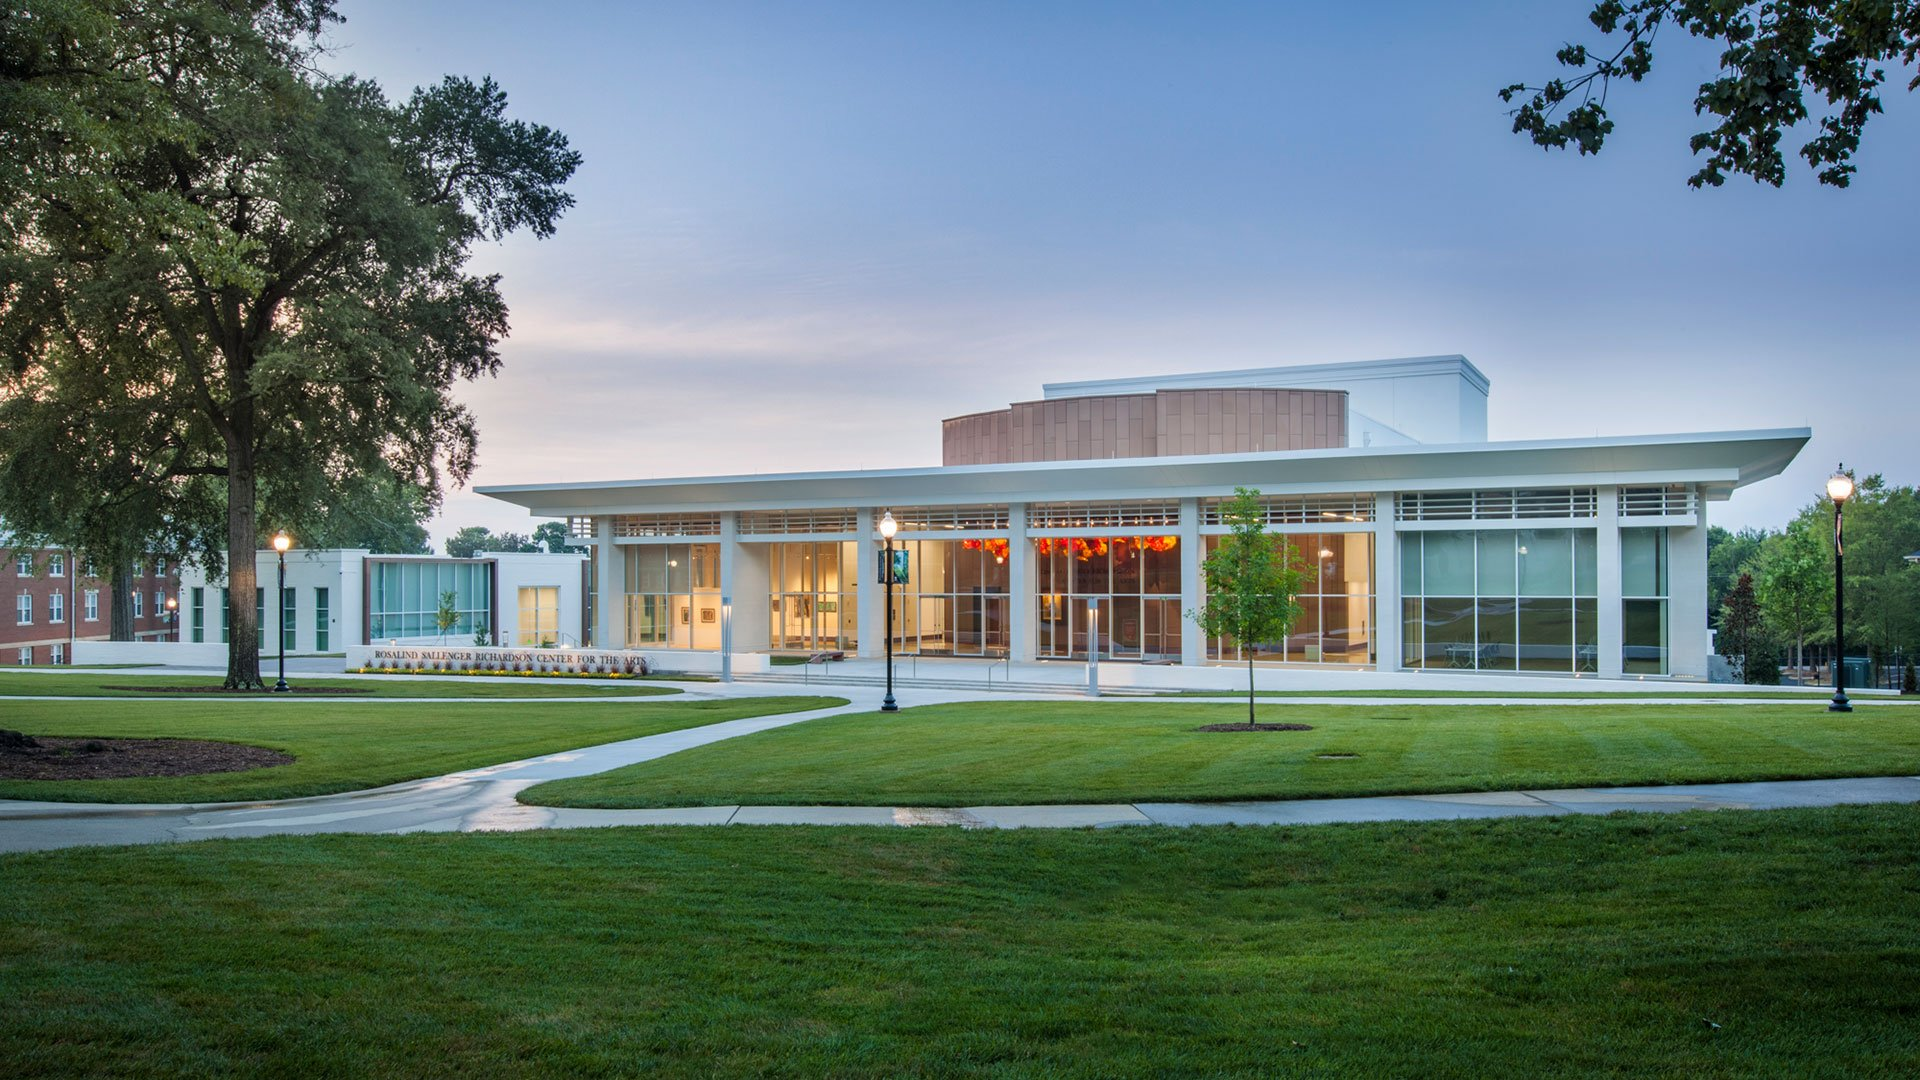 Rosalind S. Richardson Center for the Arts at Wofford College in the Spotlight